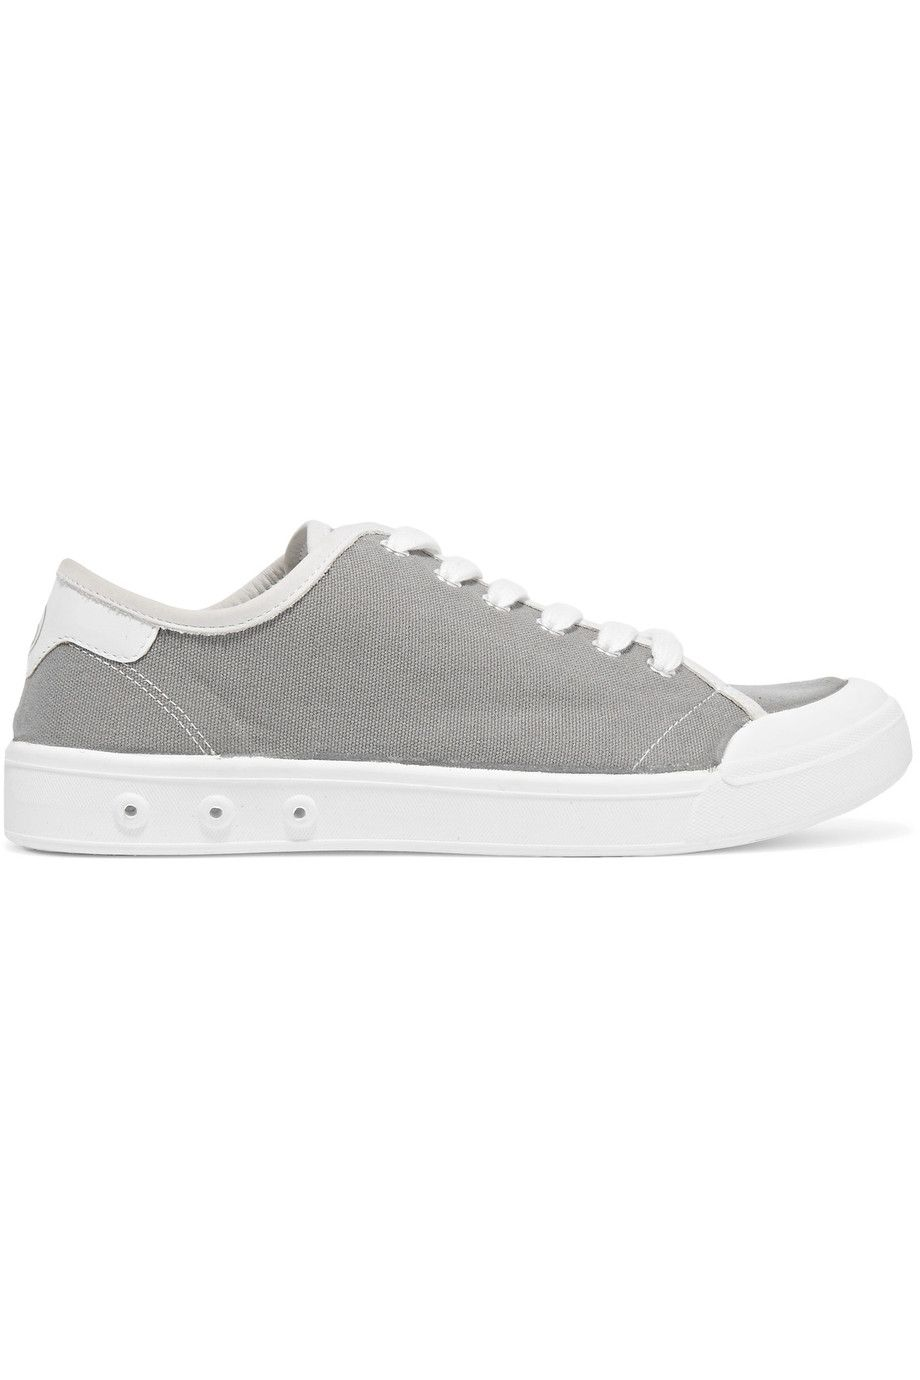 Rag & Bone Woman Standard Issue Leather-trimmed Canvas High-top Sneakers White Size 37.5 Rag & Bone uqLgtR